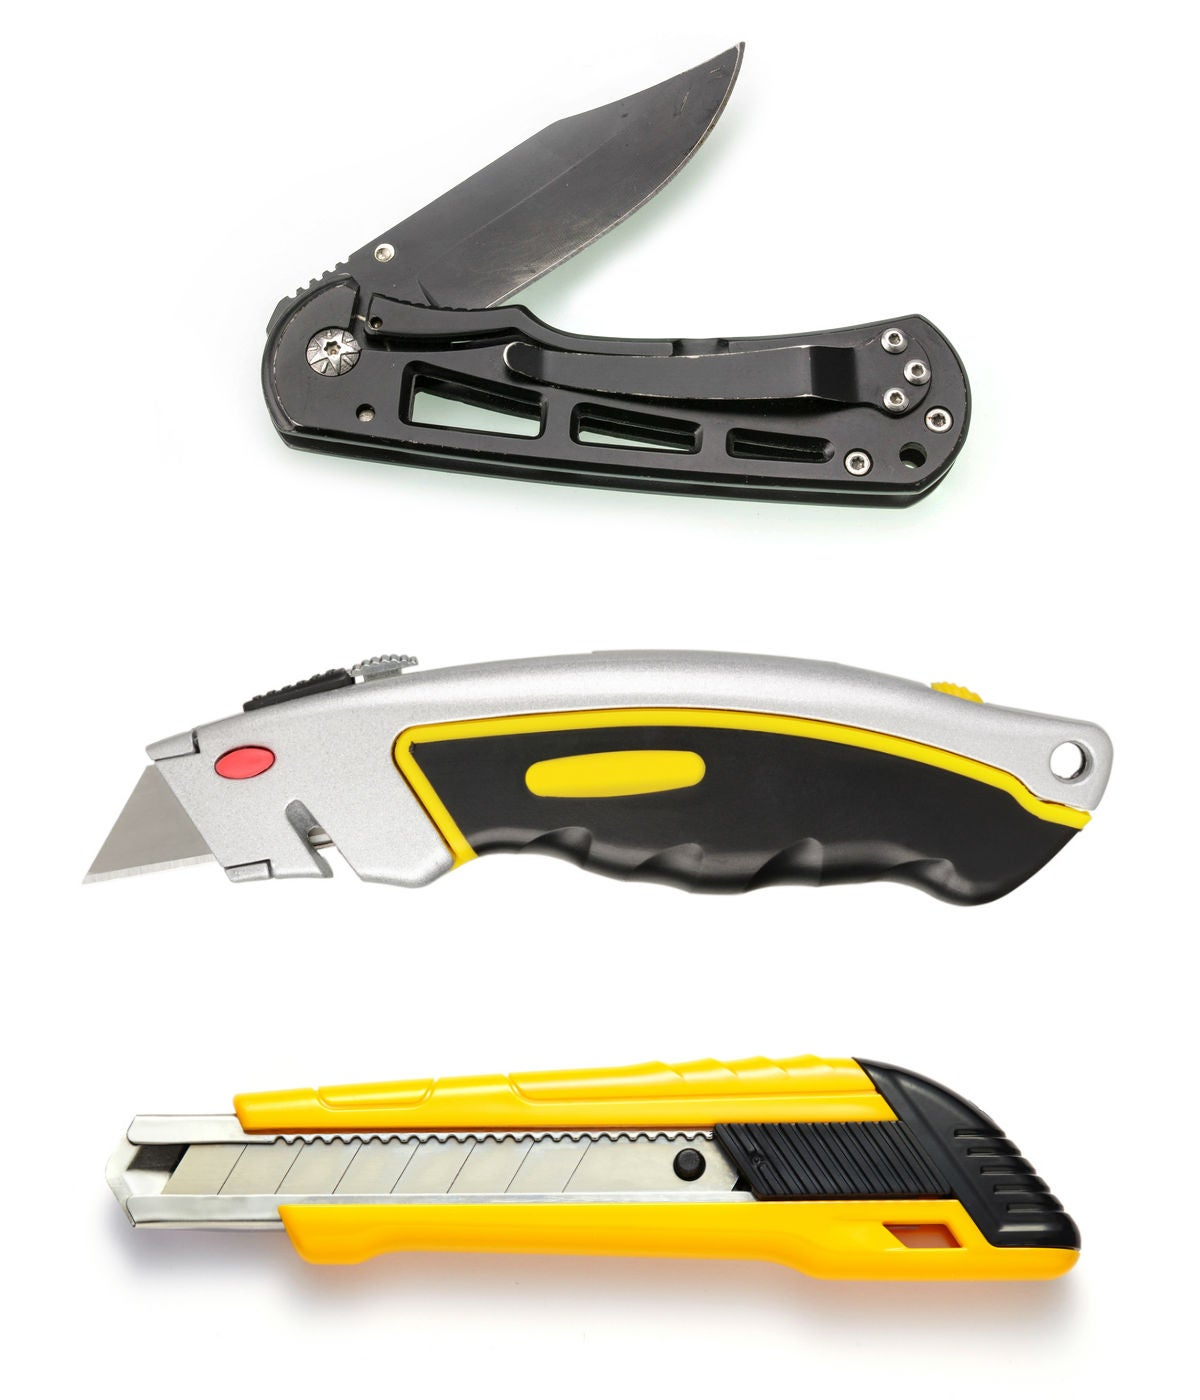 The Best Utility Knife for Household Projects